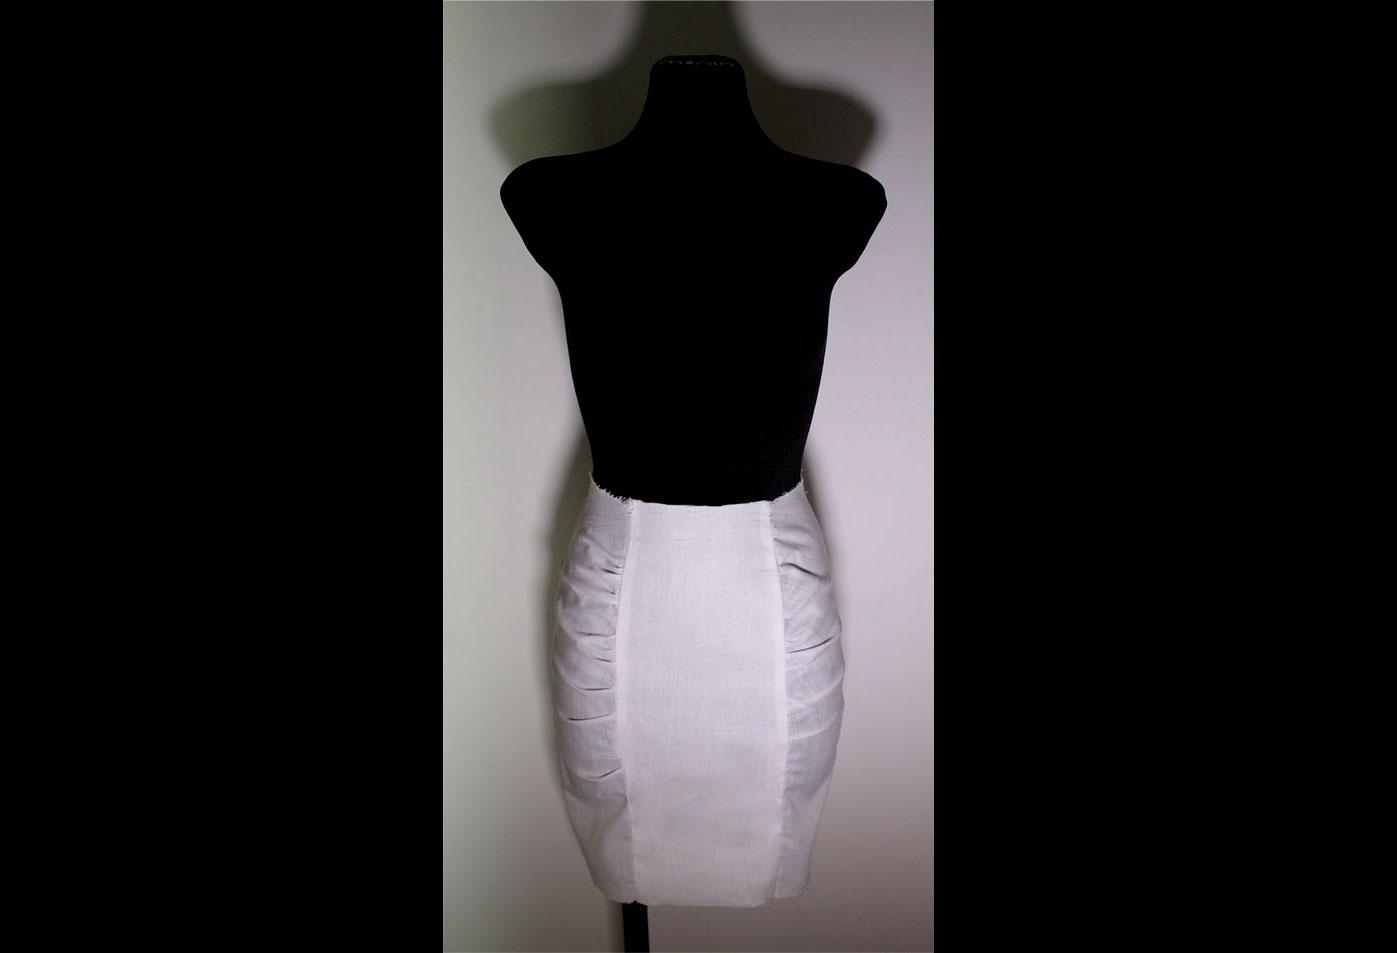 Let's draft some panel-skirts!